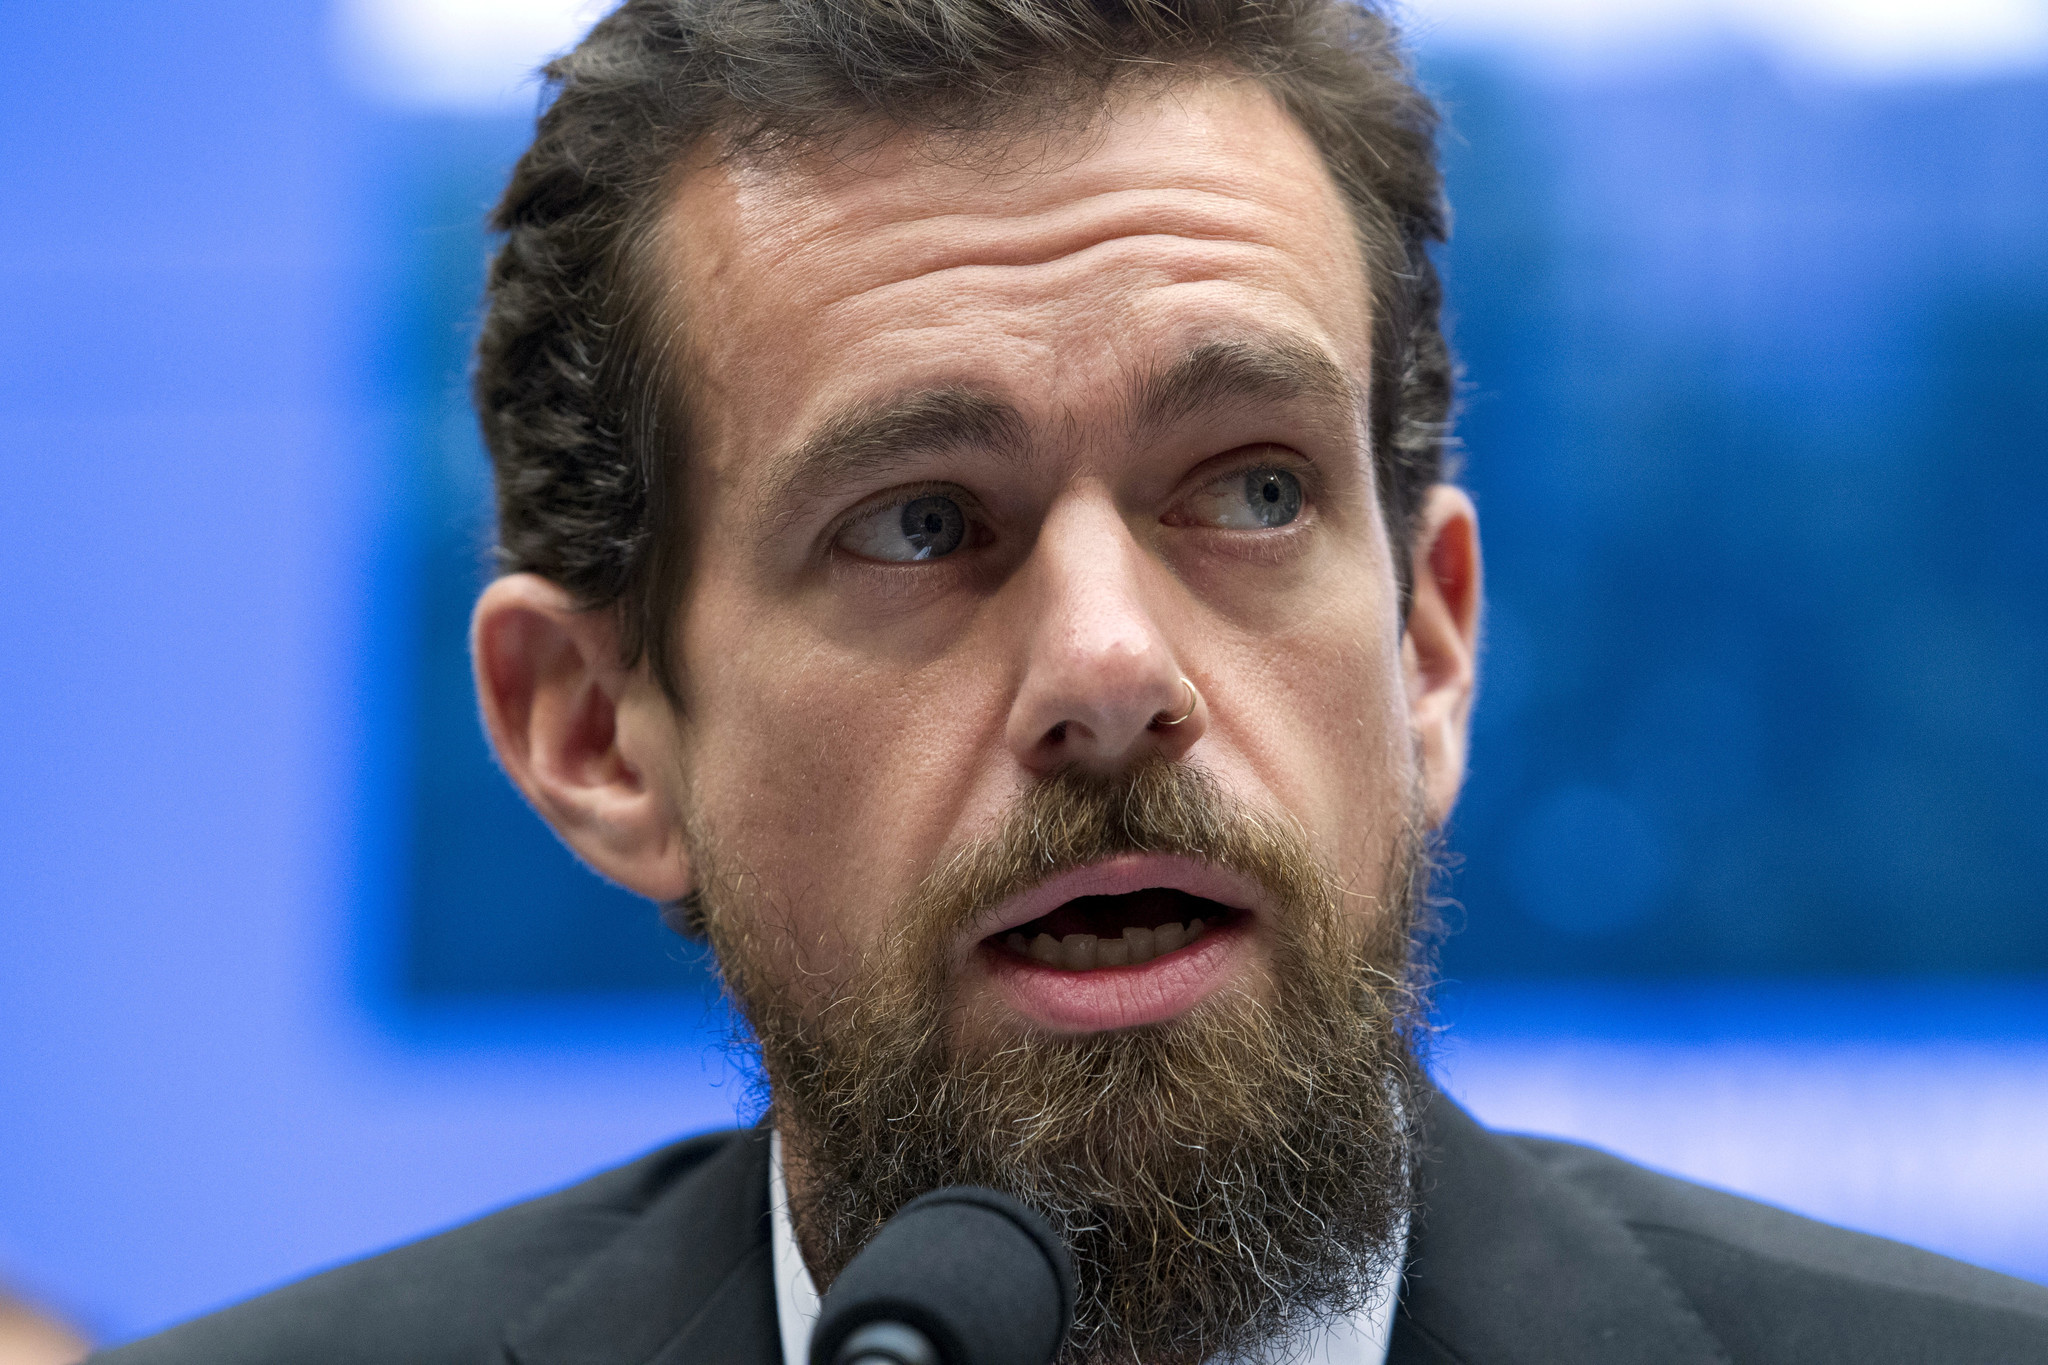 Trump meets with Twitter CEO Jack Dorsey, hours after bashing the company in tweets